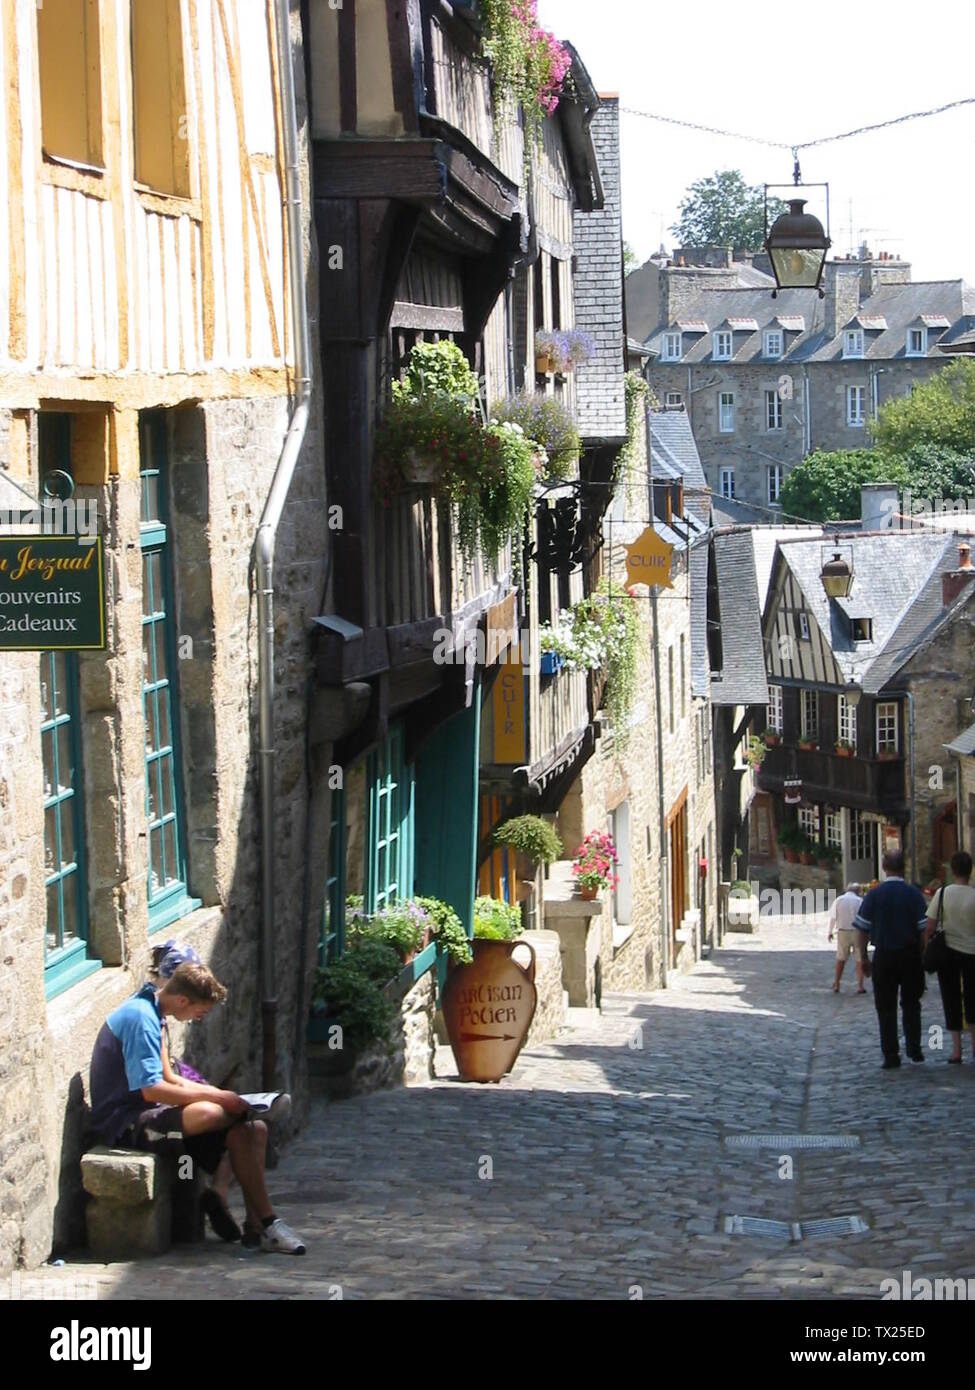 'English: The Rue du Jerzual, a steep, pictureque street in Dinan, Brittany, France, a historic walled town above the Rance valley. The picture was taken on 8 Aug 2003 during the canicule, or heat wave that affected the region and much of Europe. Picture taken by wurzeller and hereby released into public domain.; 16 August 2005 (original upload date); Own work; Wurzeller at English Wikipedia; ' - Stock Image